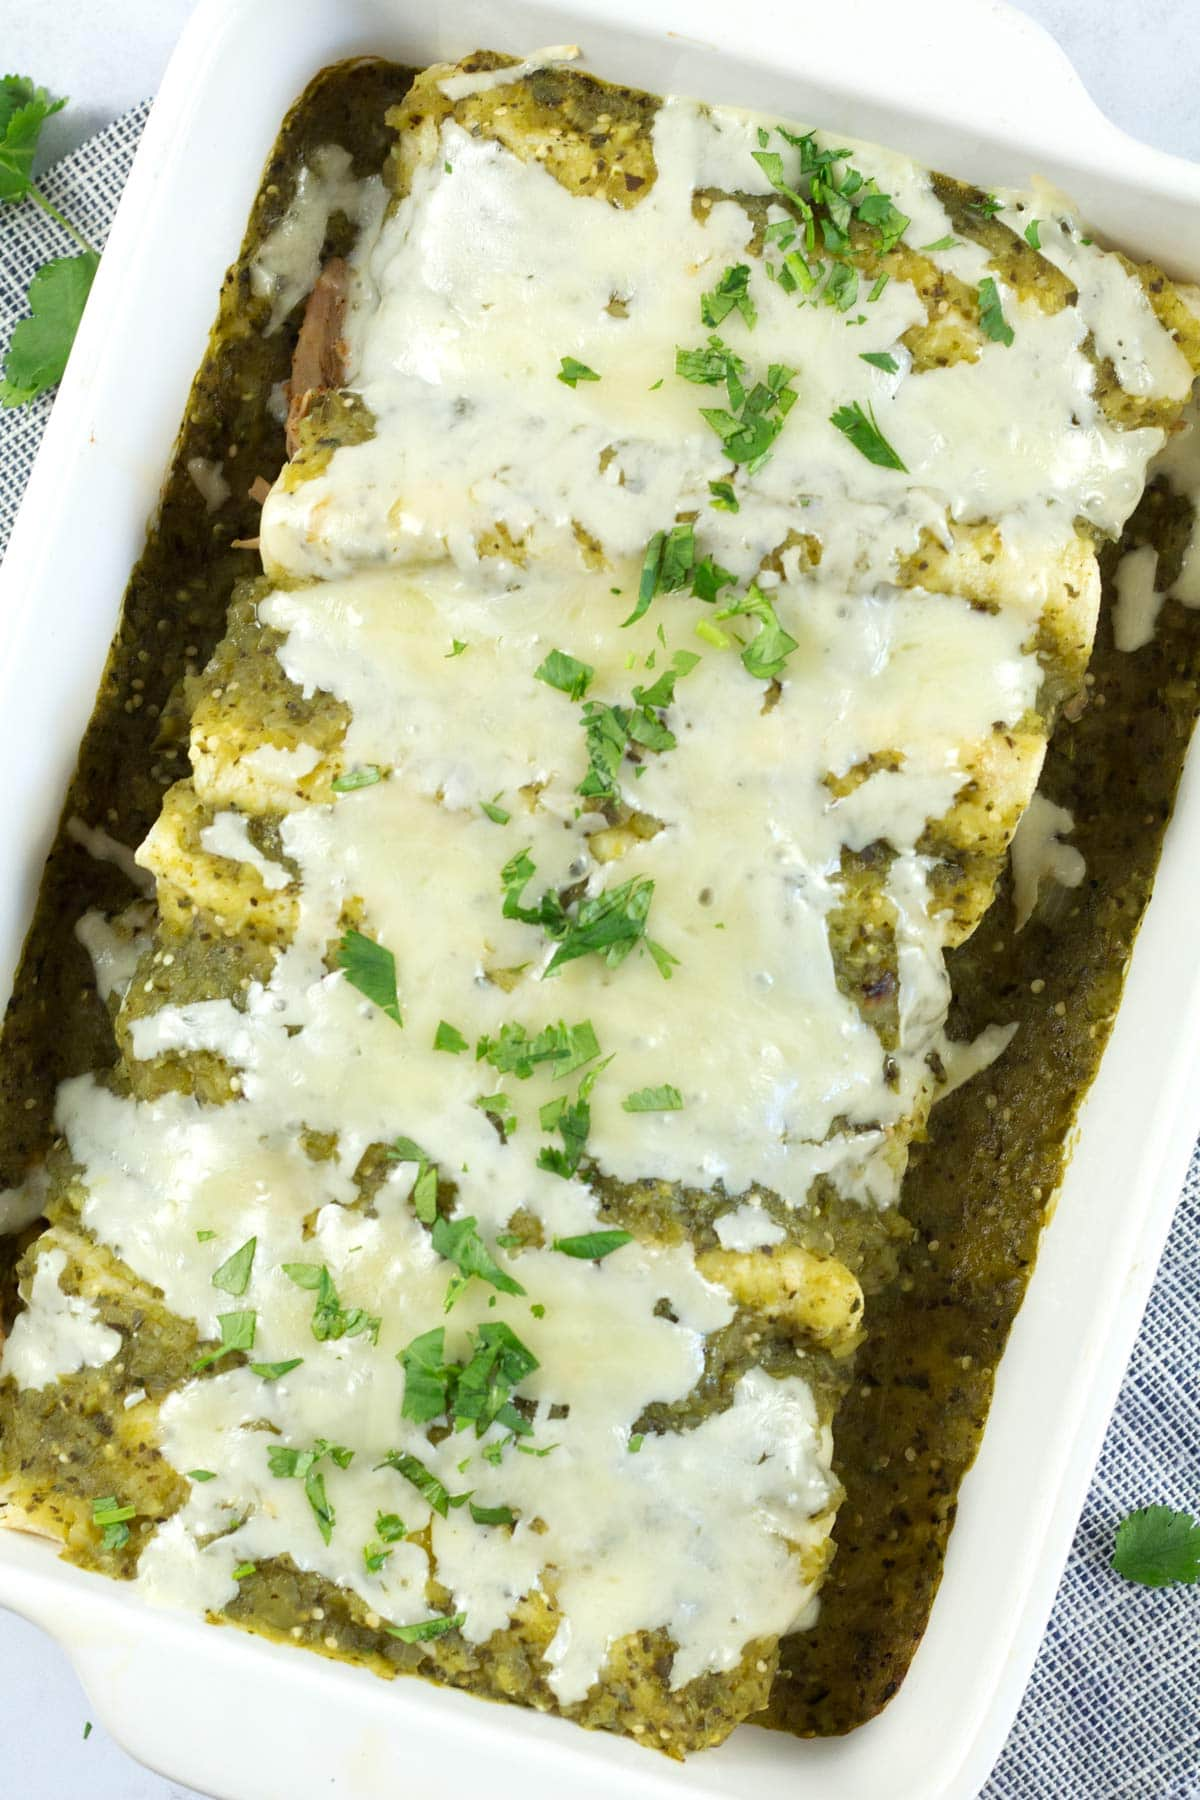 Green enchiladas with melted jack cheese in pan.